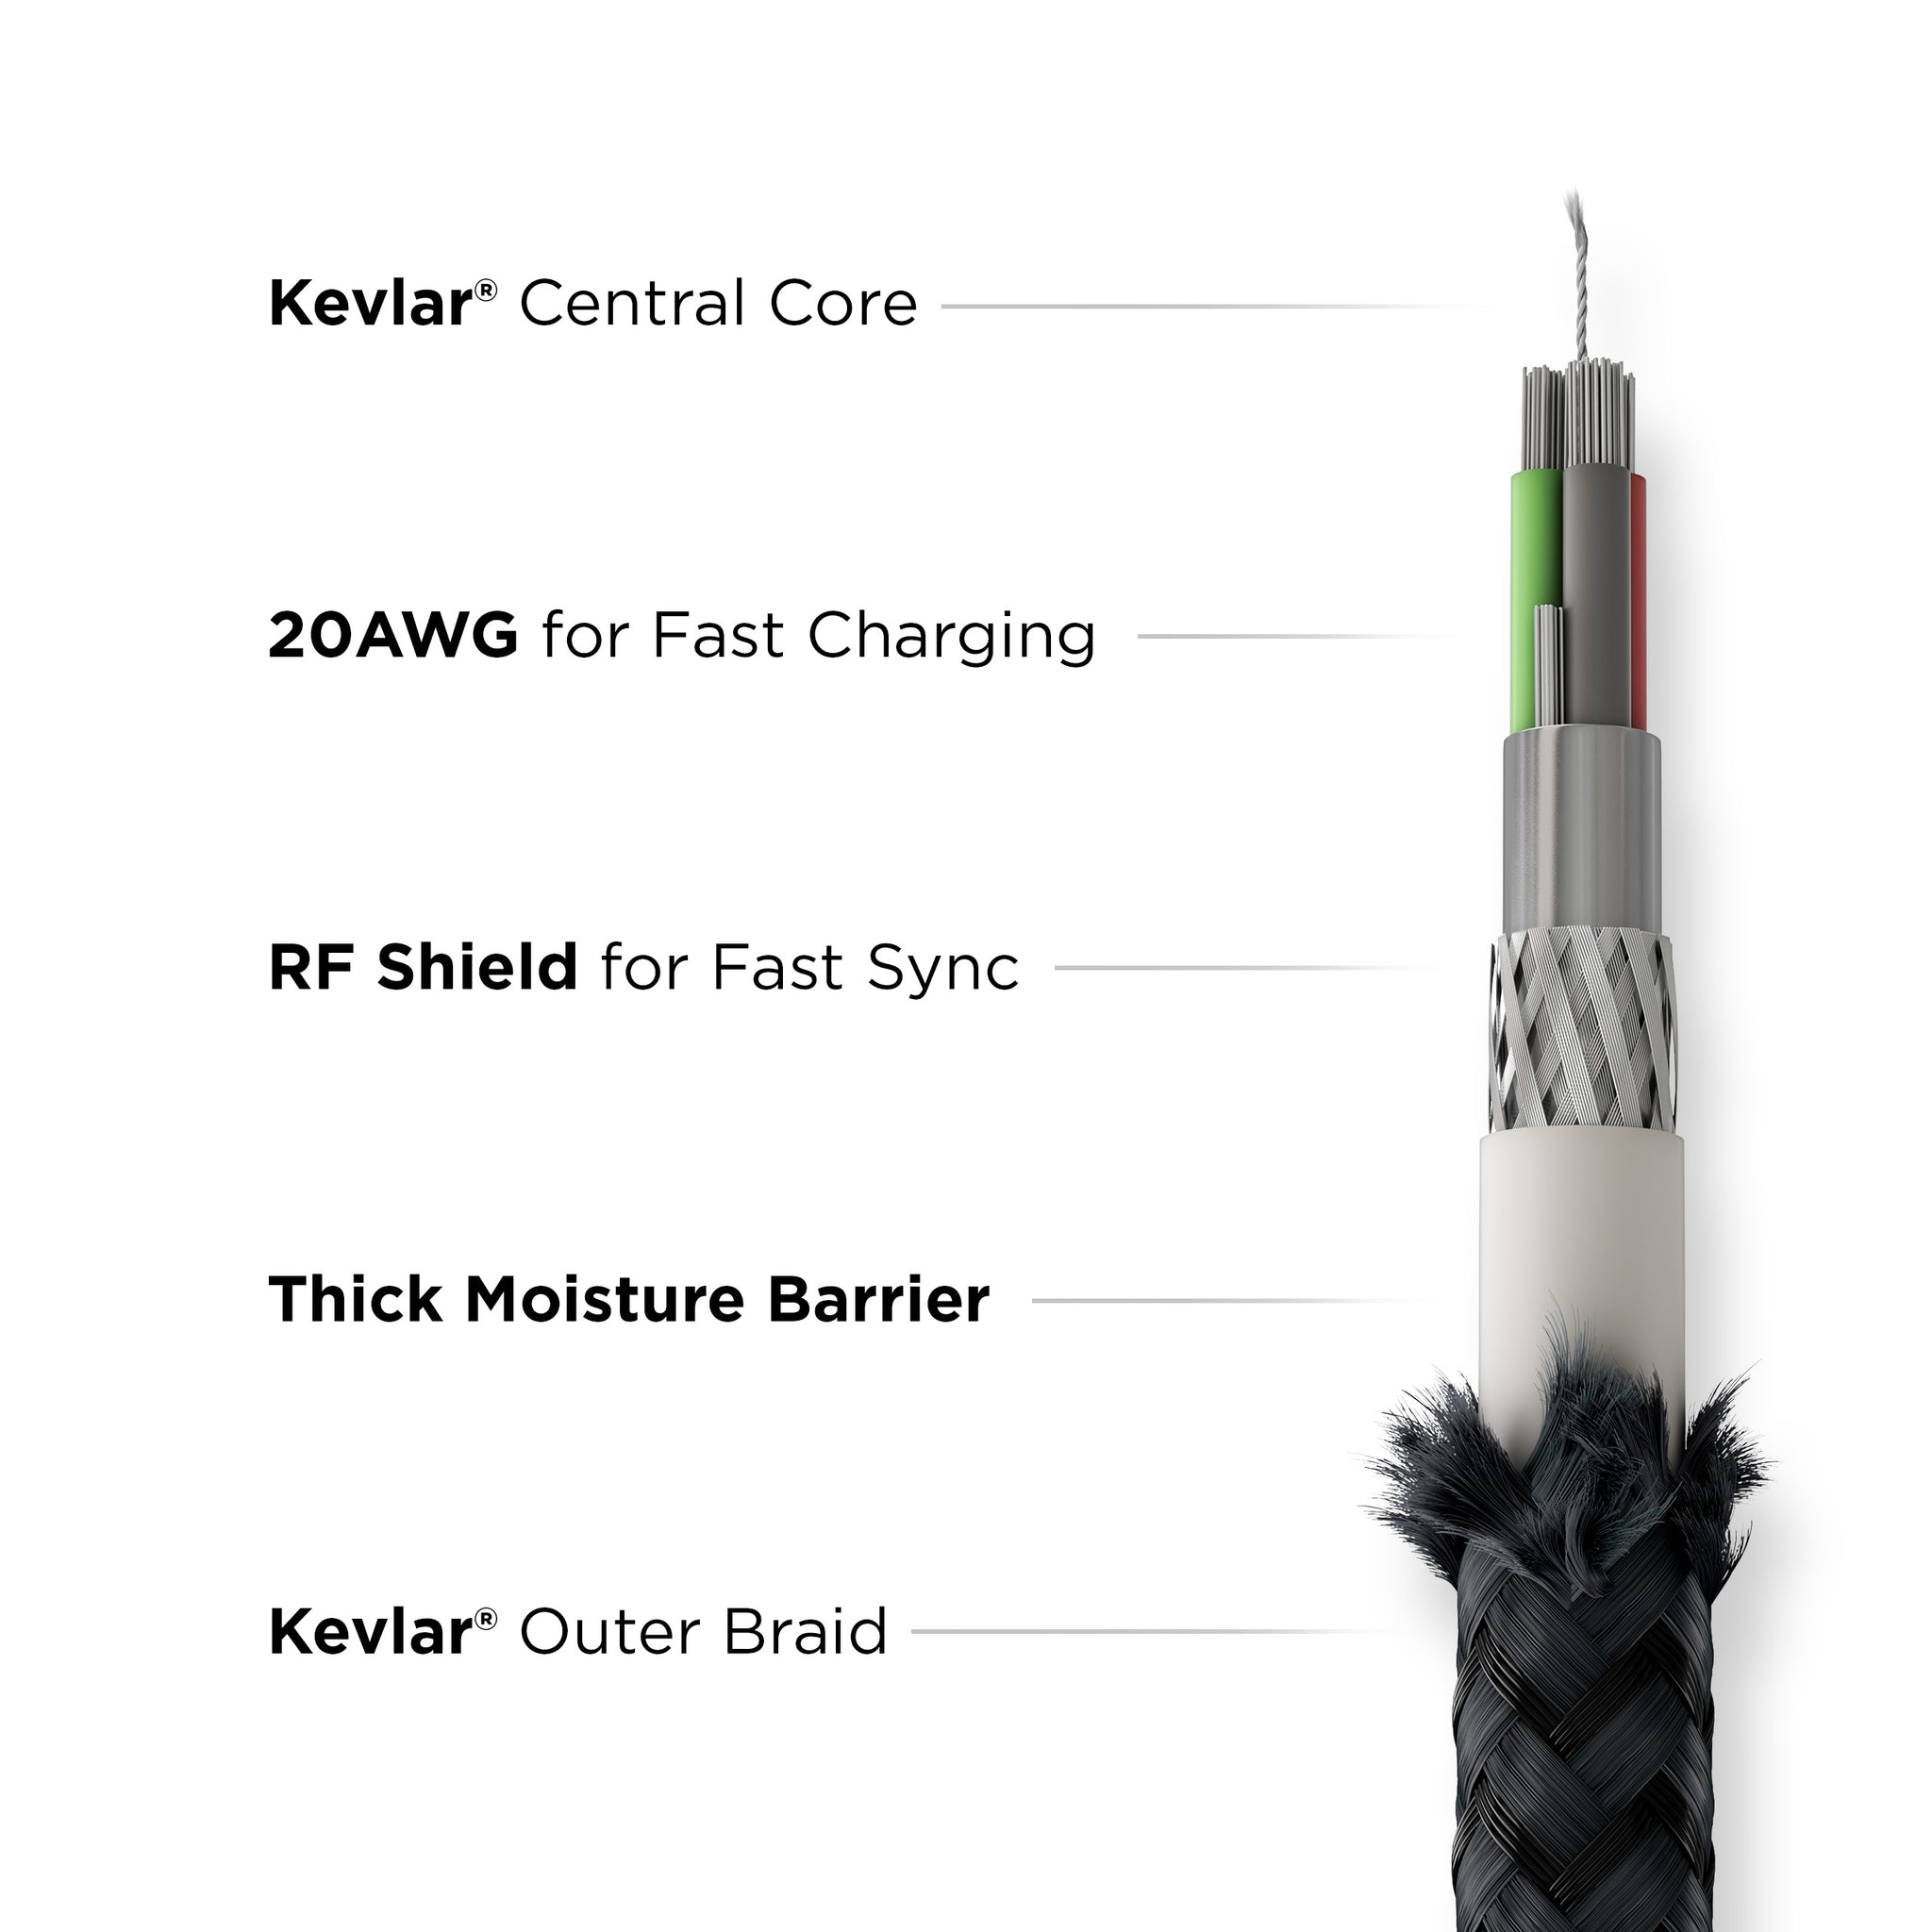 Nomad USB-C Cable with Kevlar® - 1.5m